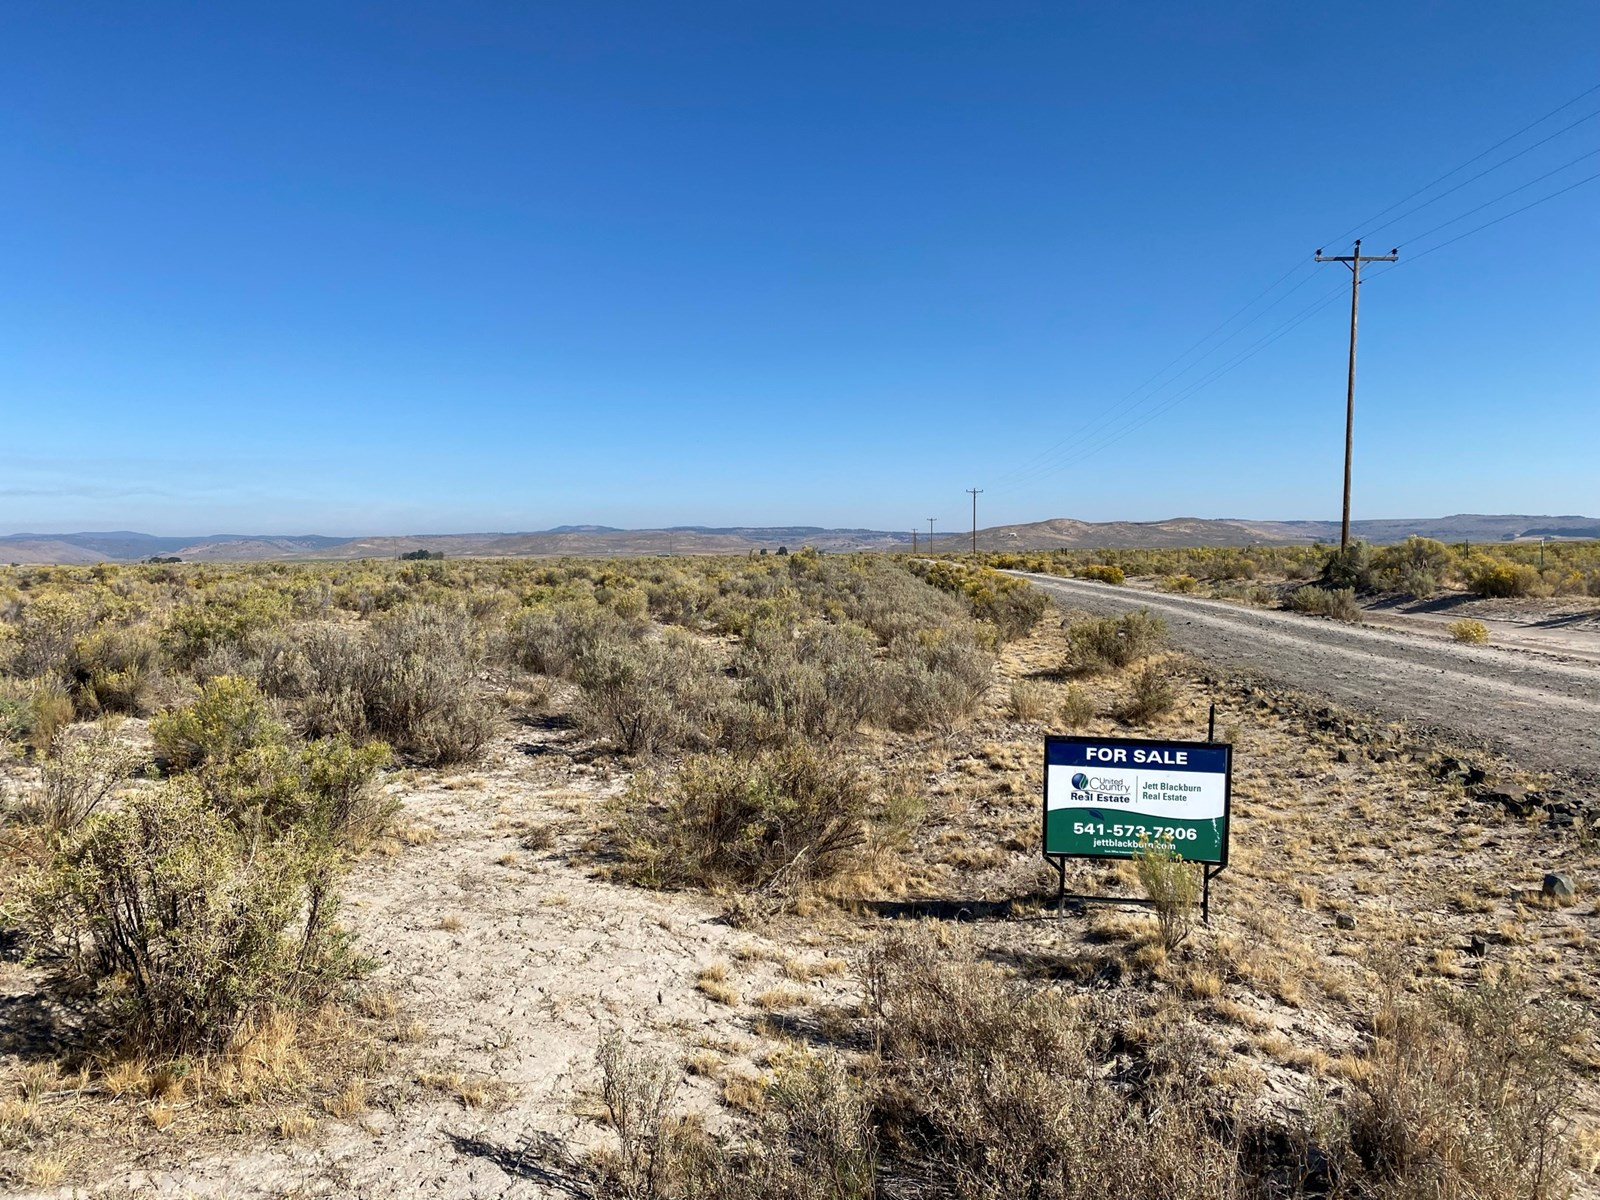 80 acres off Hwy 20 E on Penny Road